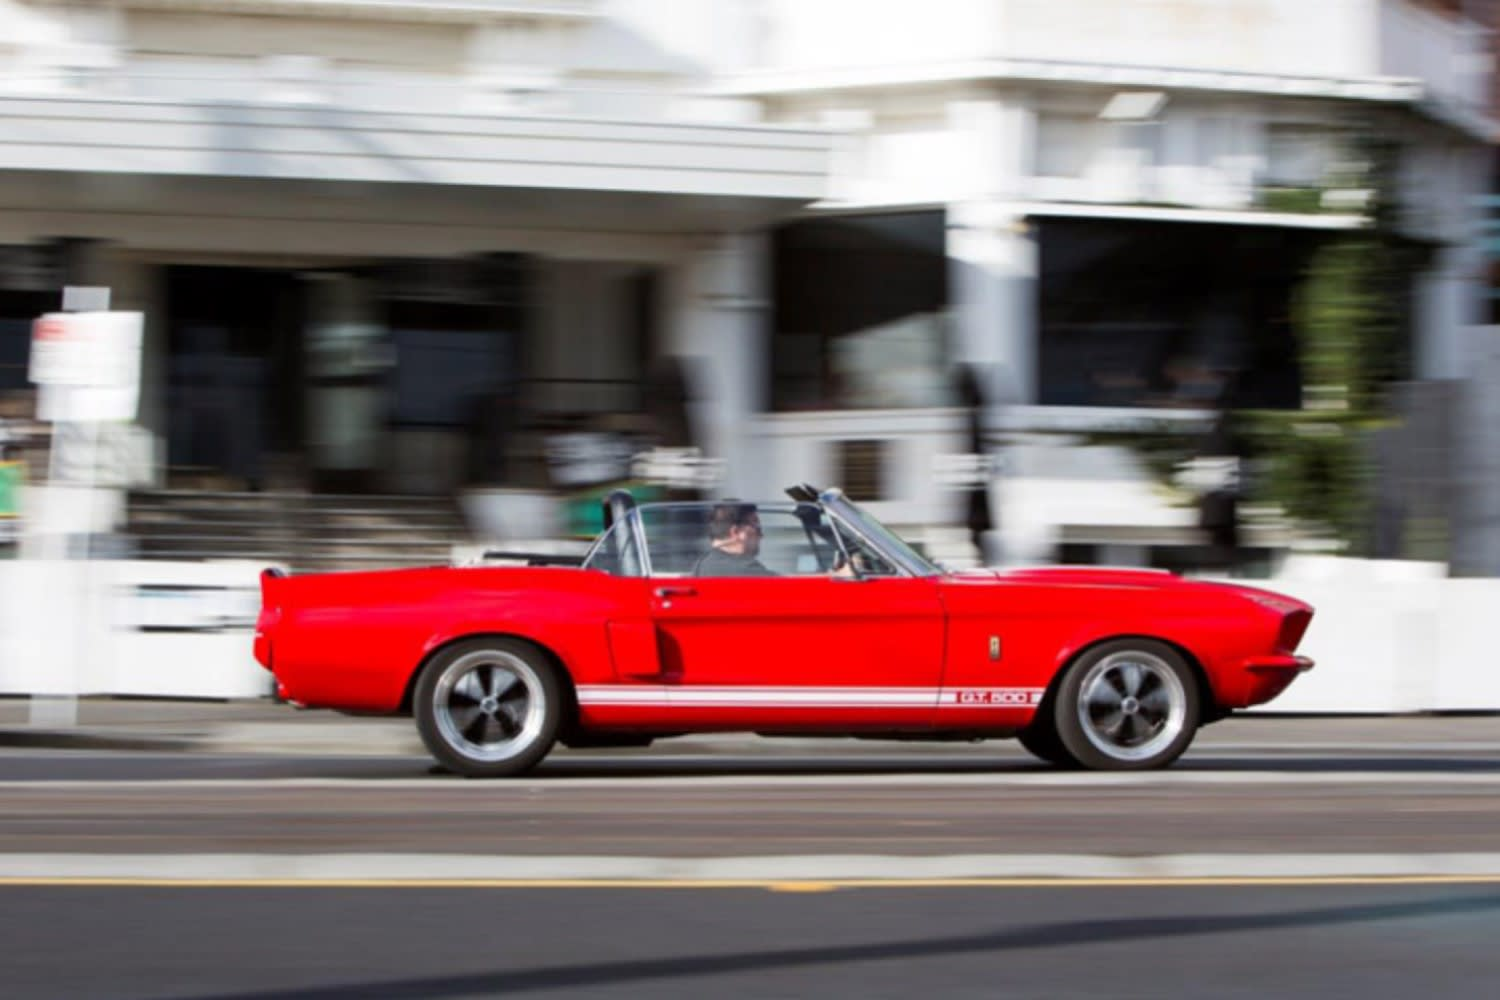 GT500 Mustang One Day Self Drive Car Hire at Moorabbin - Midweek - EOFY SPECIAL!